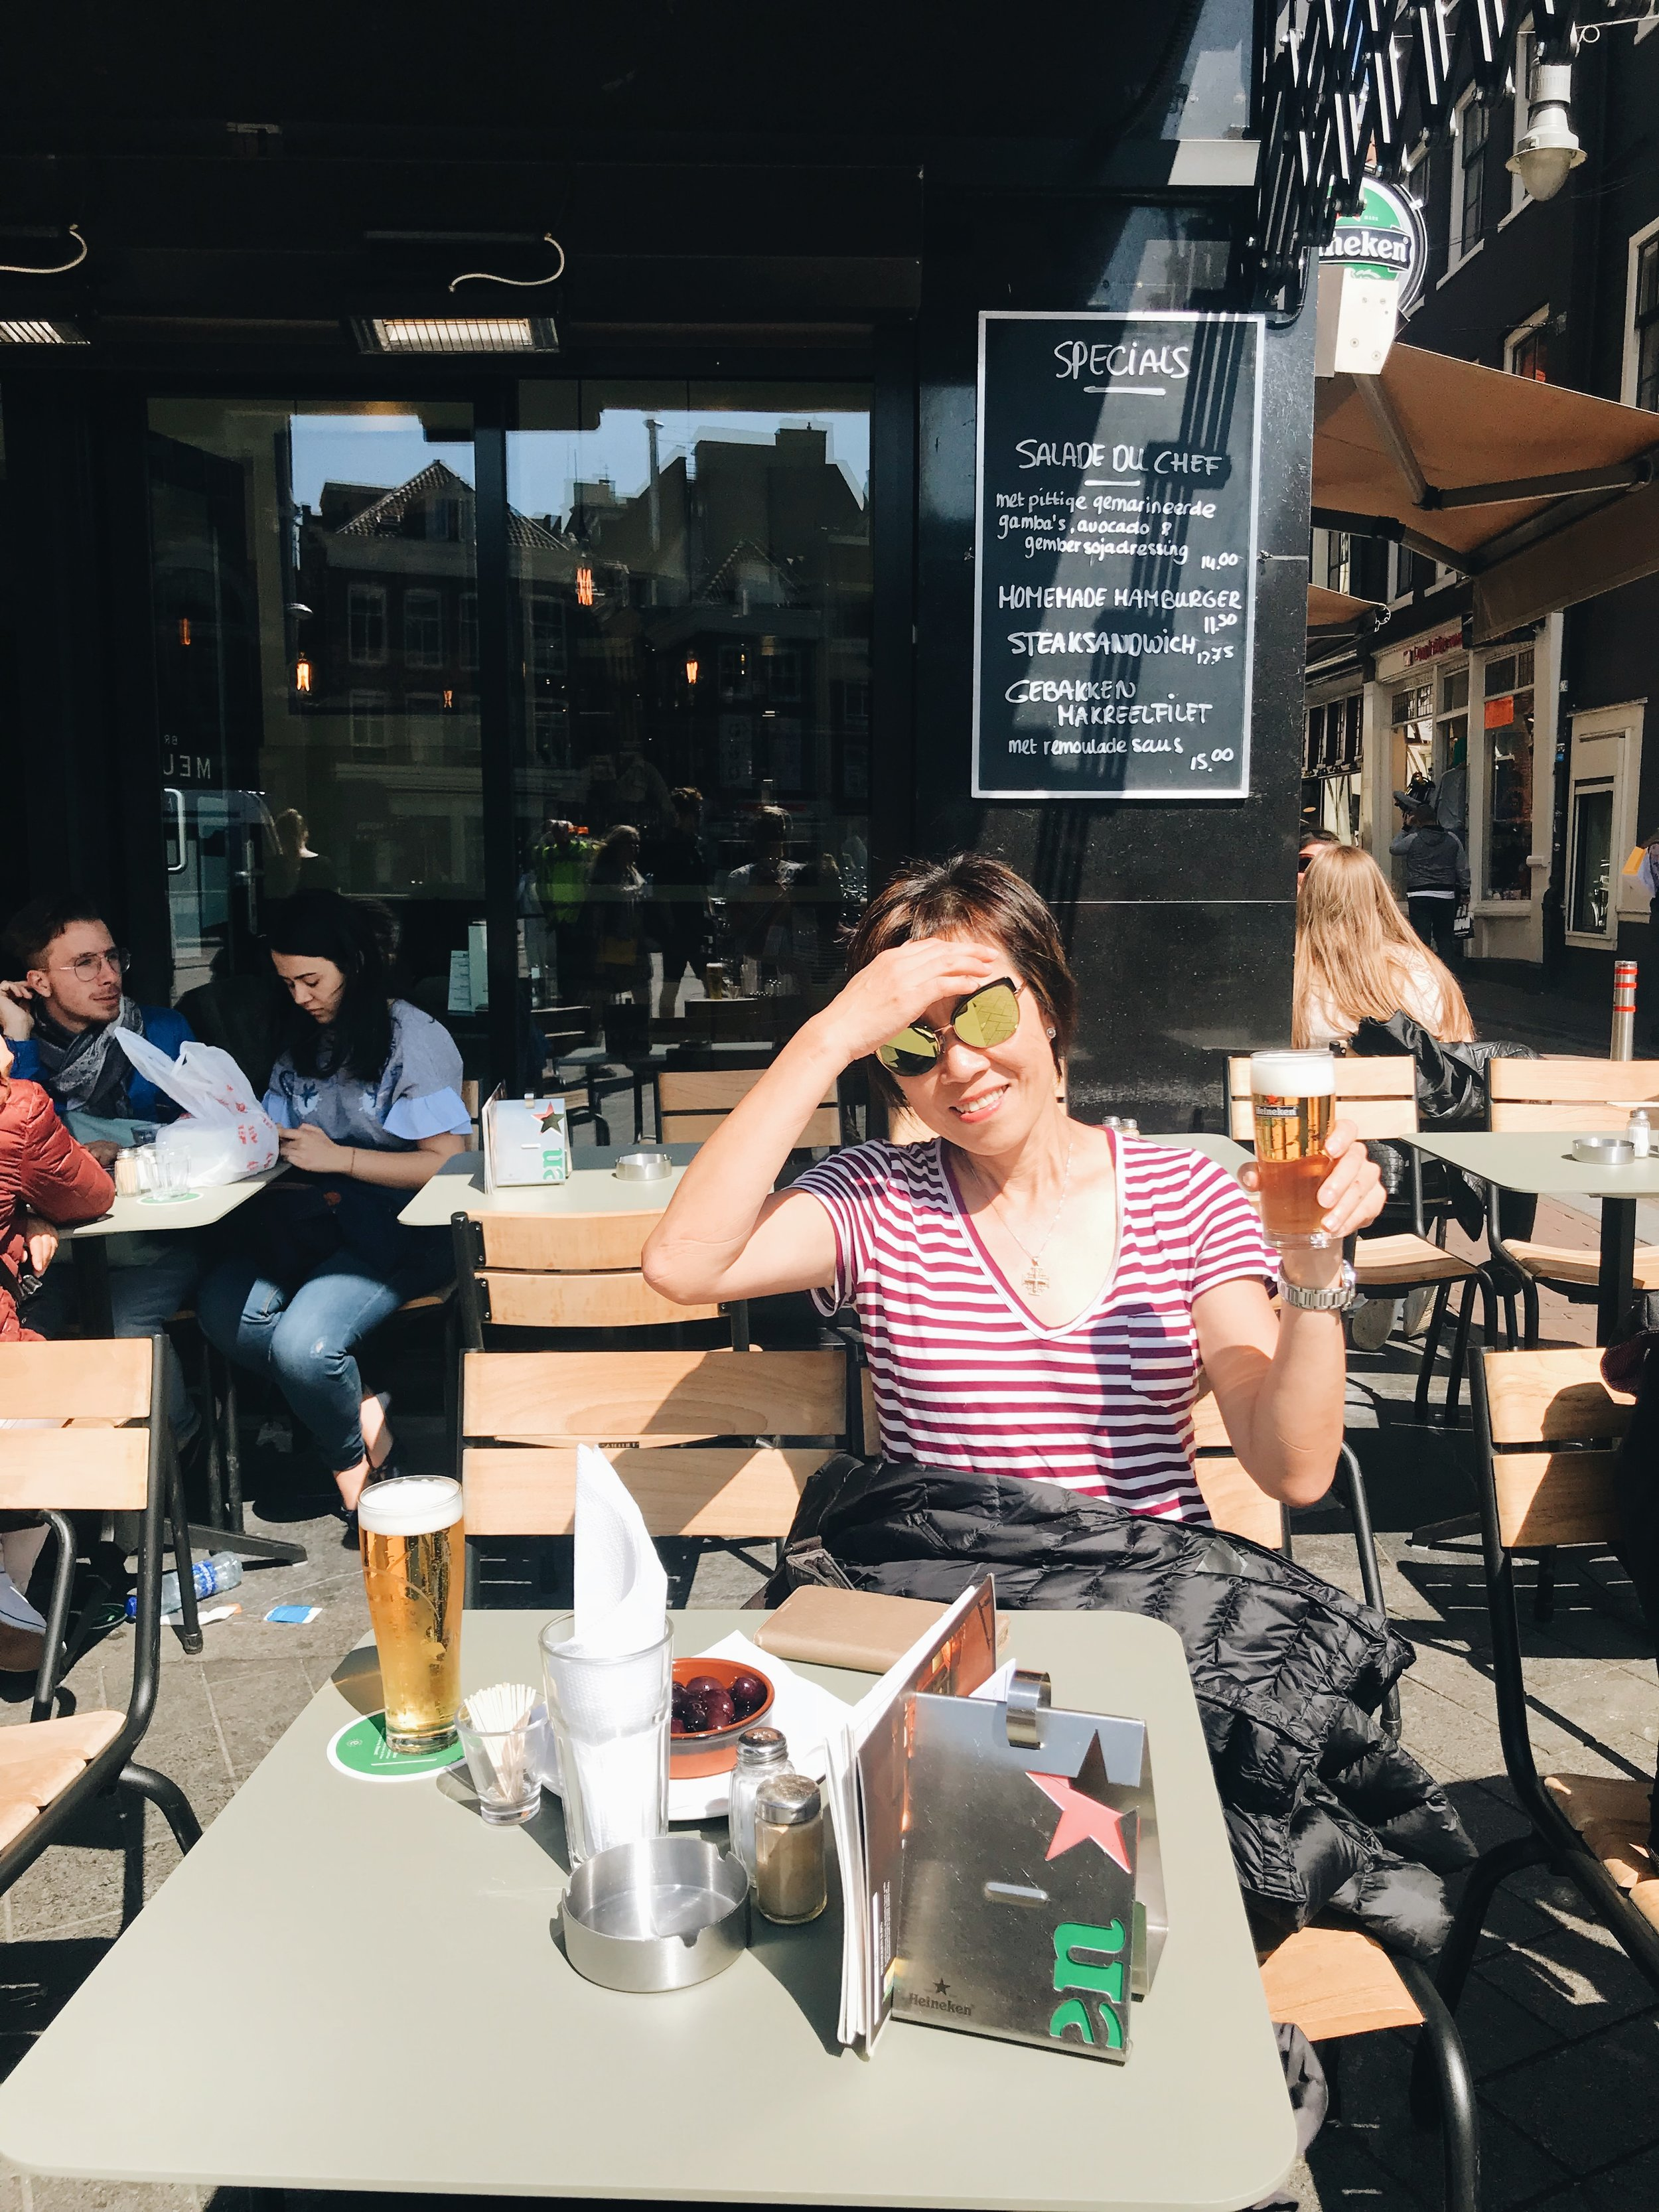 Soaking in - and drinking - the Dutch culture in Amsterdam